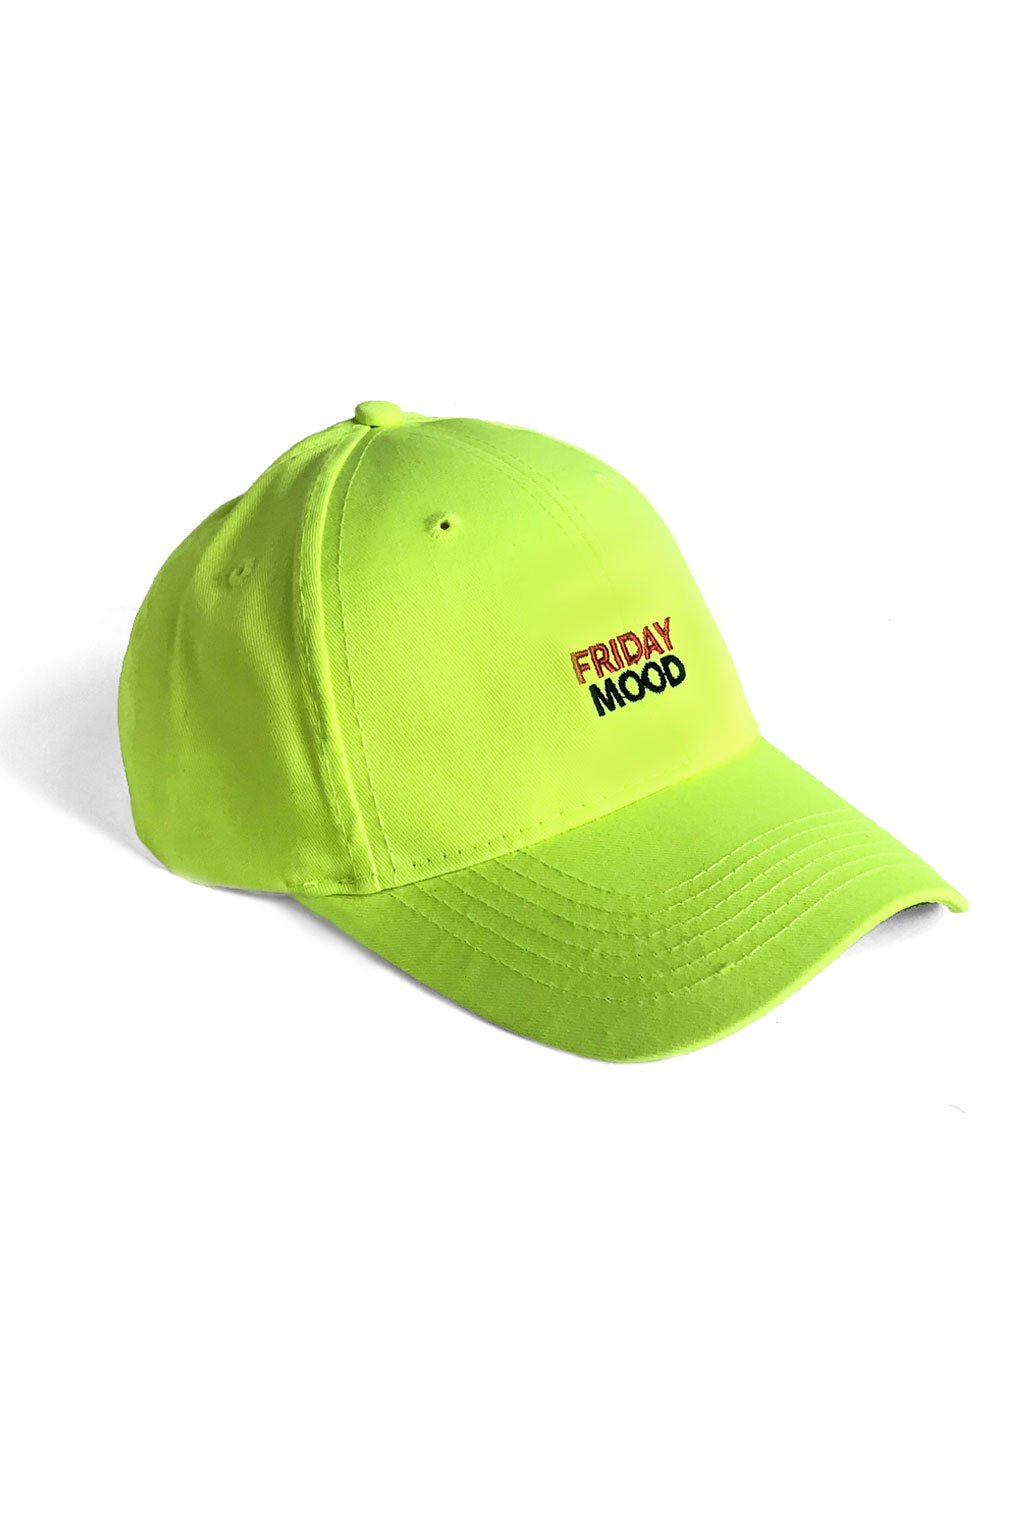 Green Friday Mood Cap - Port 213.com